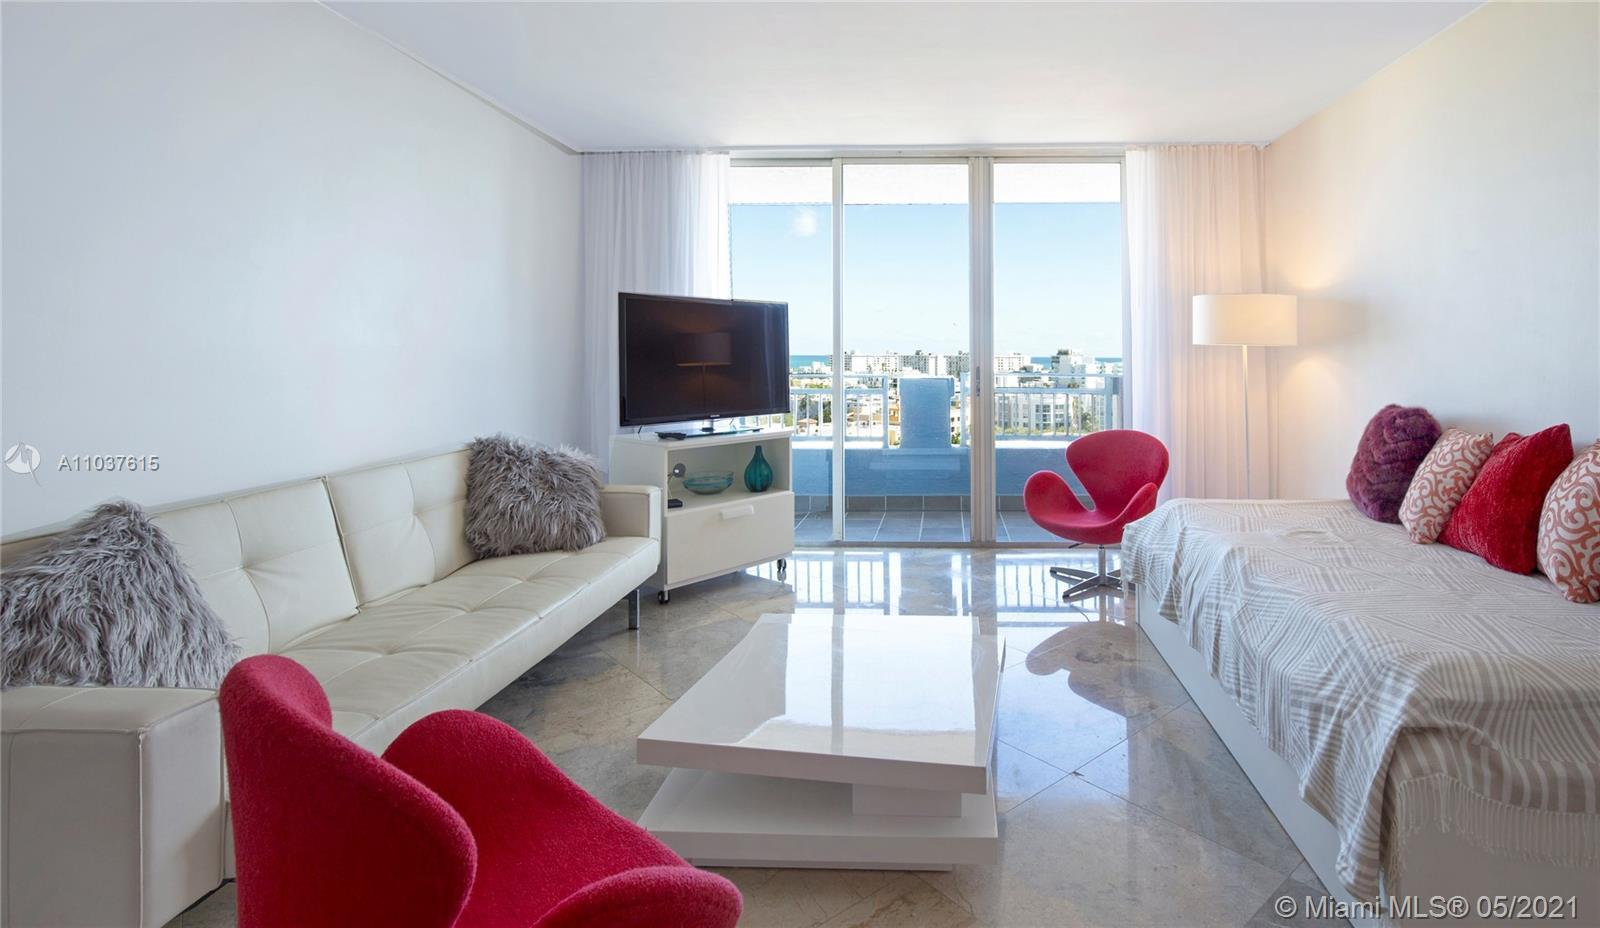 Great property with 2bed/ 2ba, marble floors through the unit, beautiful views to South Beach and Oc